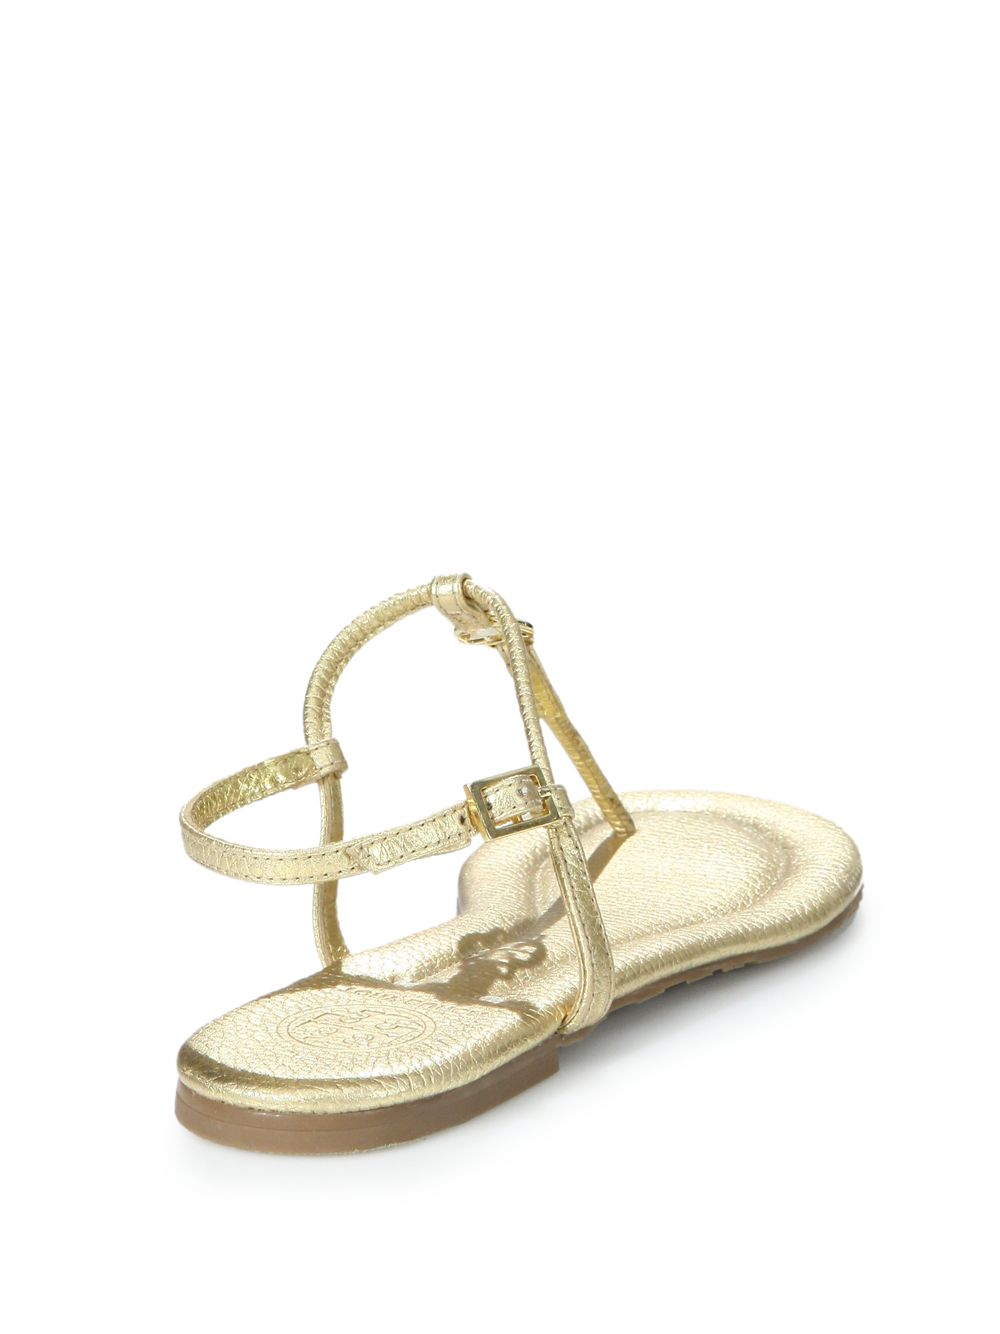 ed3f03999bdcb0 Lyst - Tory Burch Emmy Metallic Leather Logo Thong Sandals in Metallic